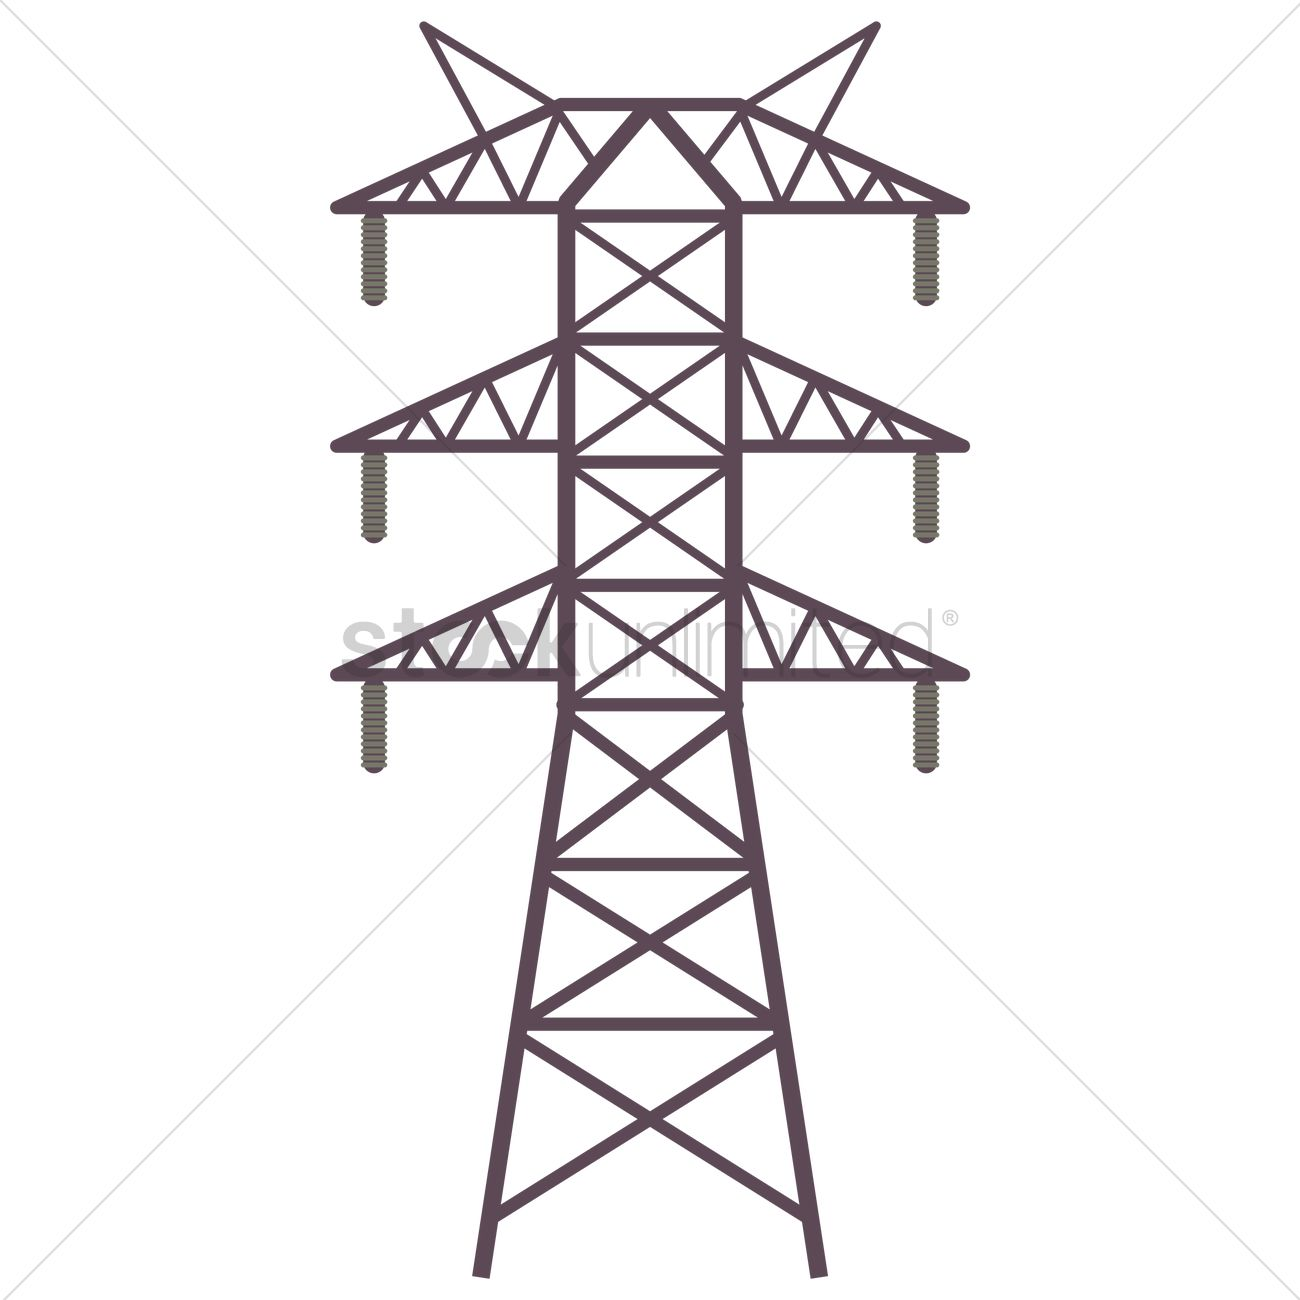 Super Creative Electricity Transmission Line Towers additionally Transmission 20tower as well Structure likewise Land Of Giants Towering Icelandic Super Sculptures e2 80 a8 furthermore Iran Electricity Exports. on types power line pylons